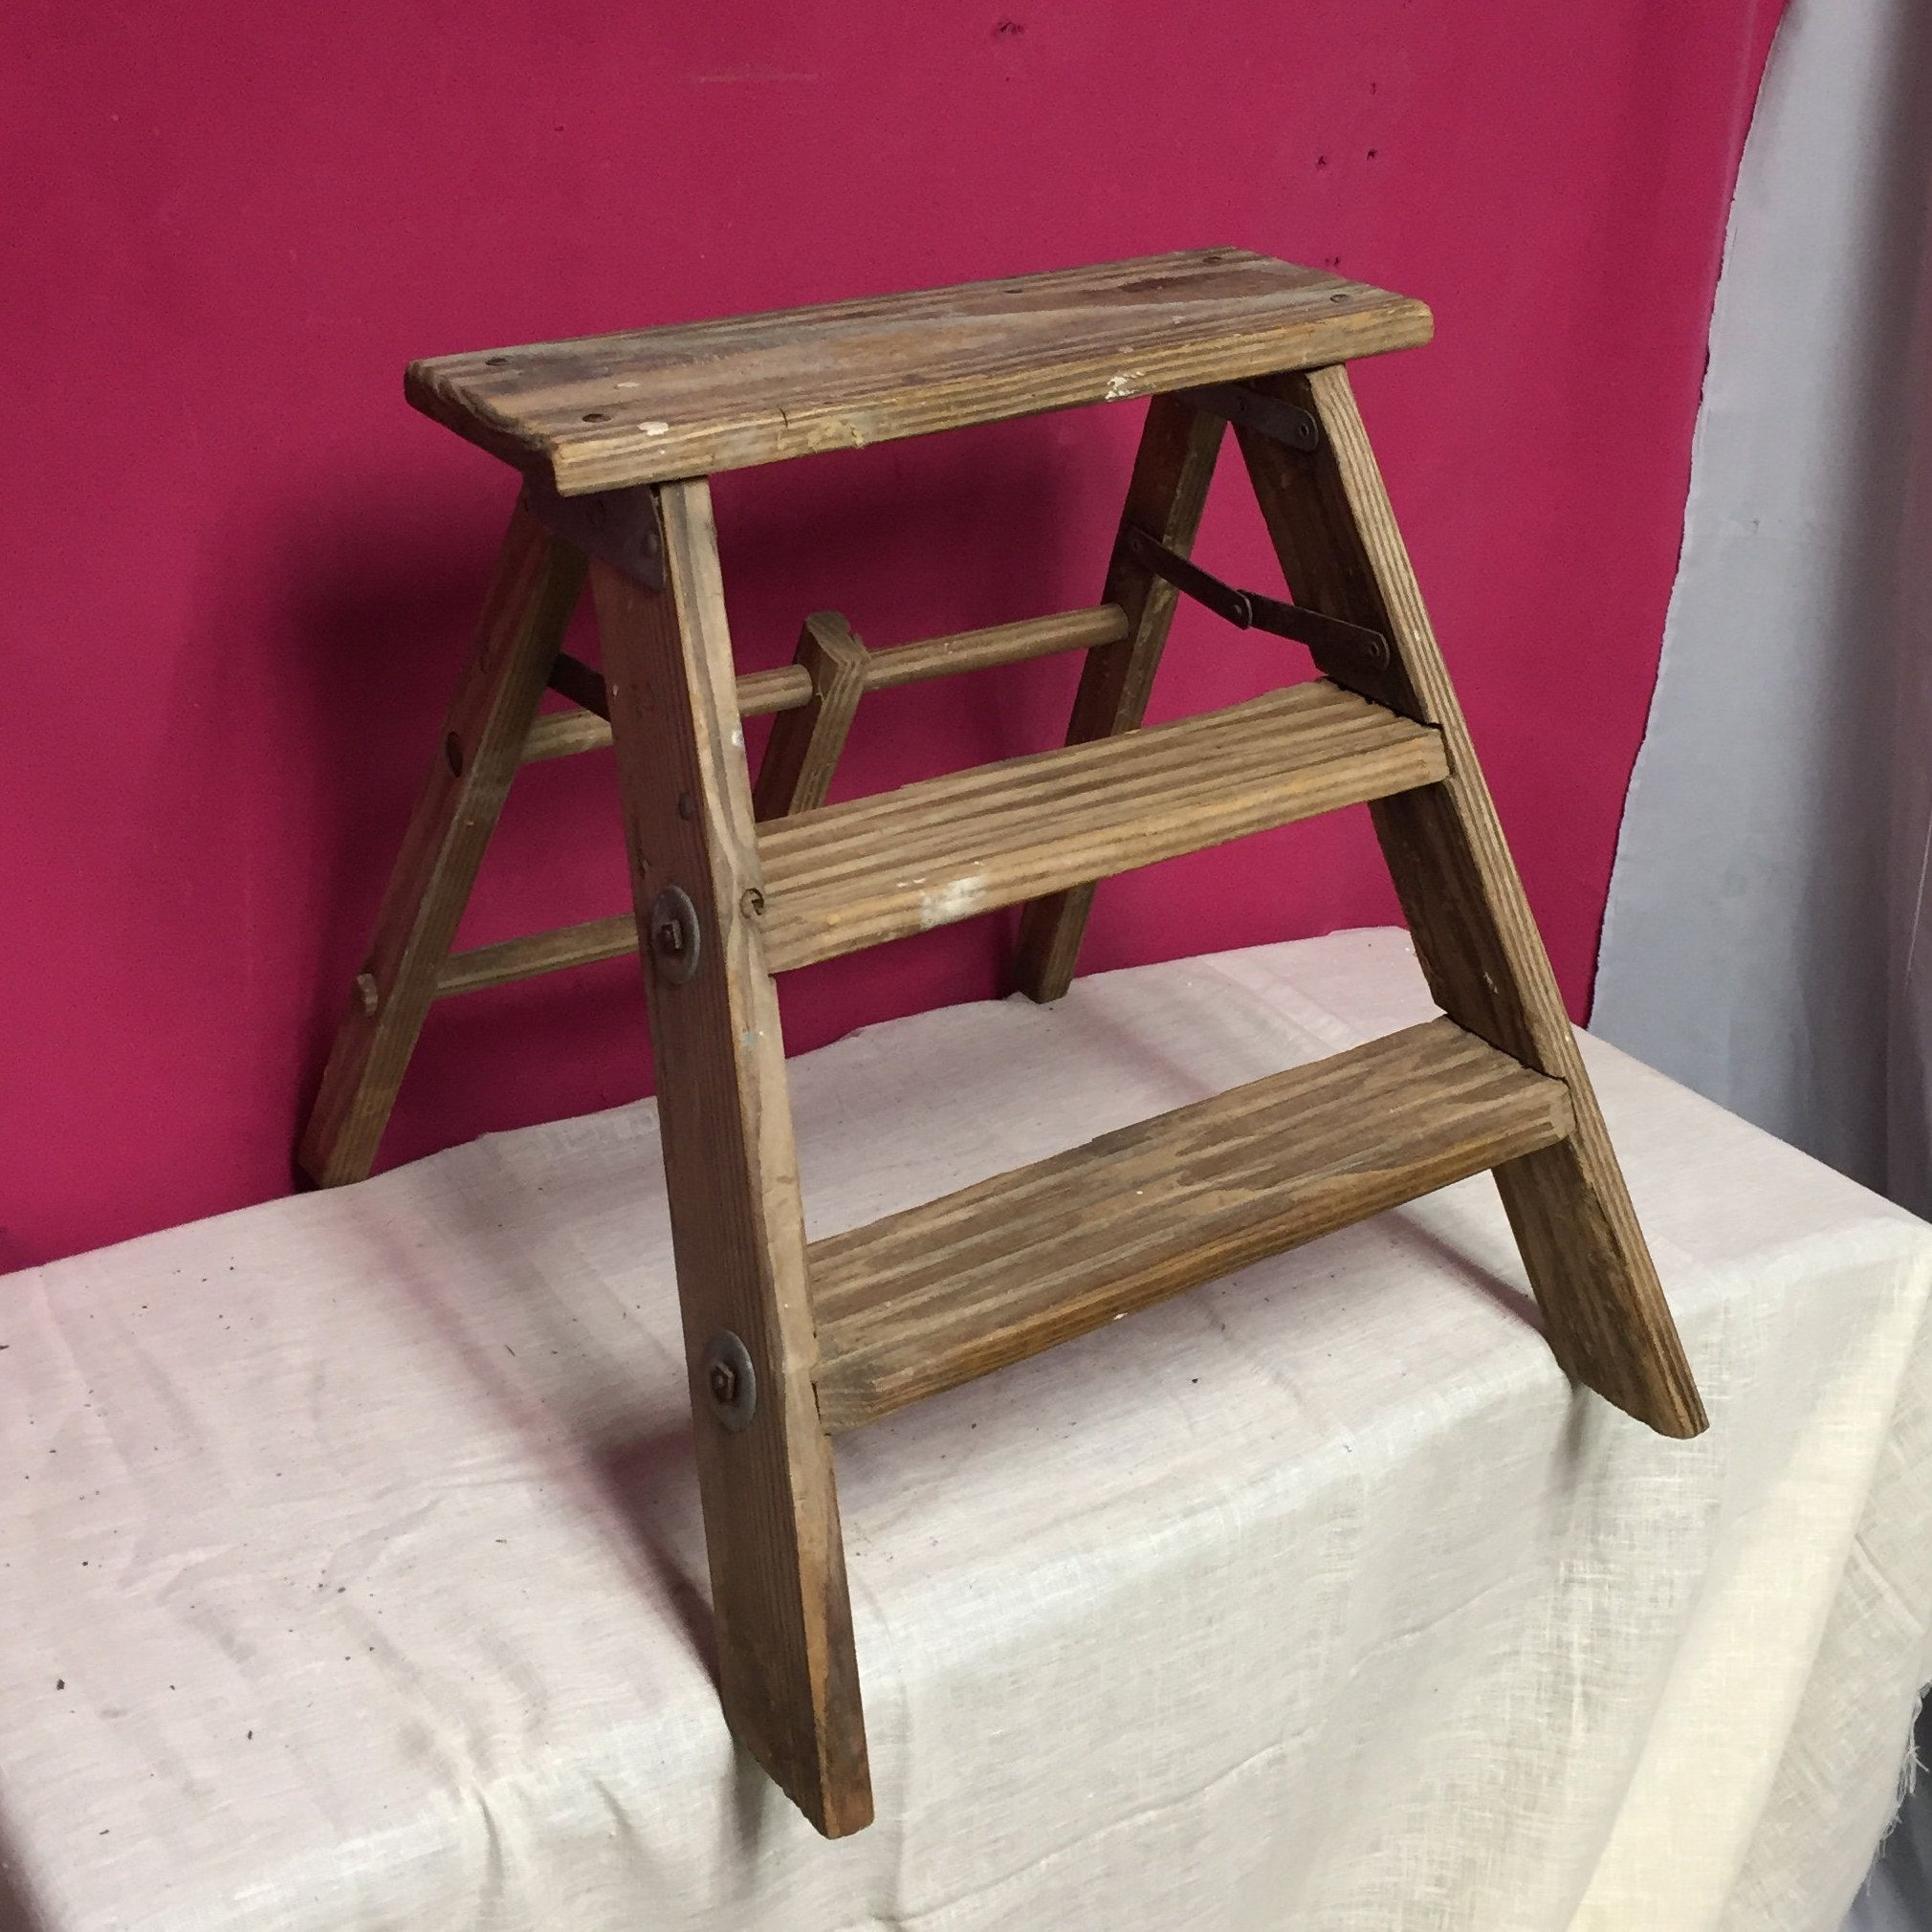 Small Old Wooden Step Ladder Stool 2 Step Folding Stool